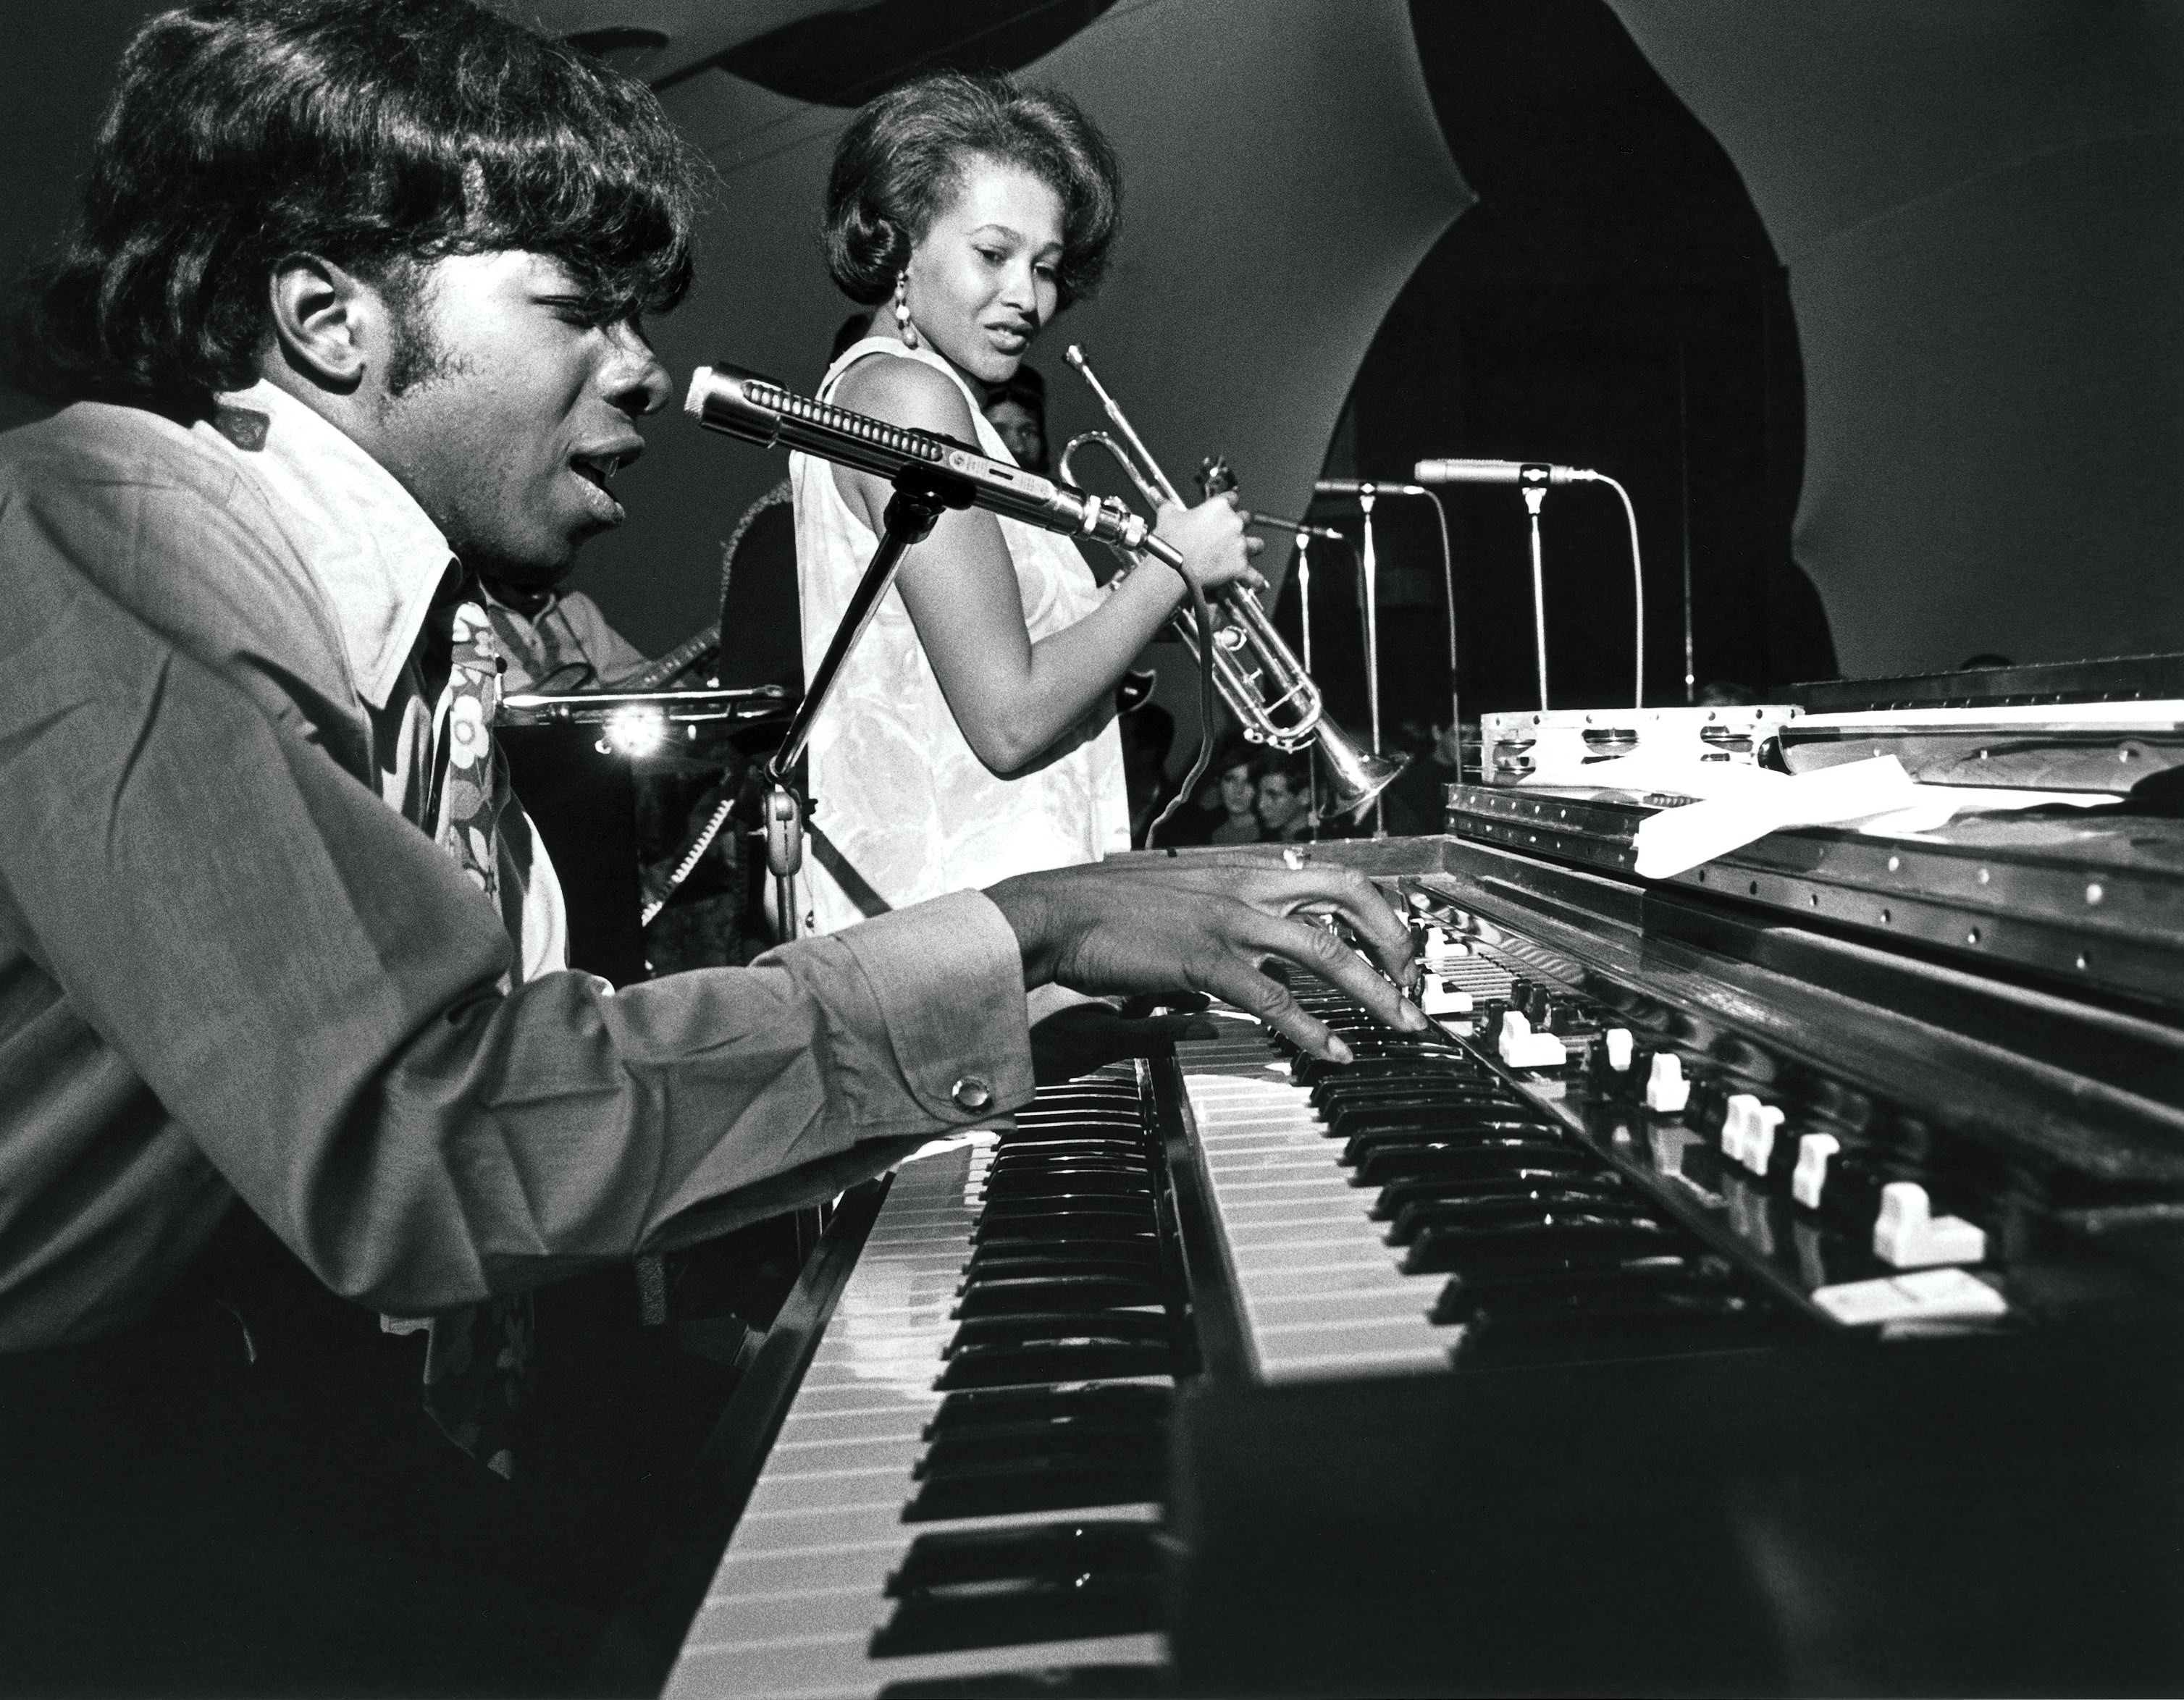 MUERE CYNTHIA ROBINSON, TROMPETISTA DE SLY AND THE FAMILY STONE